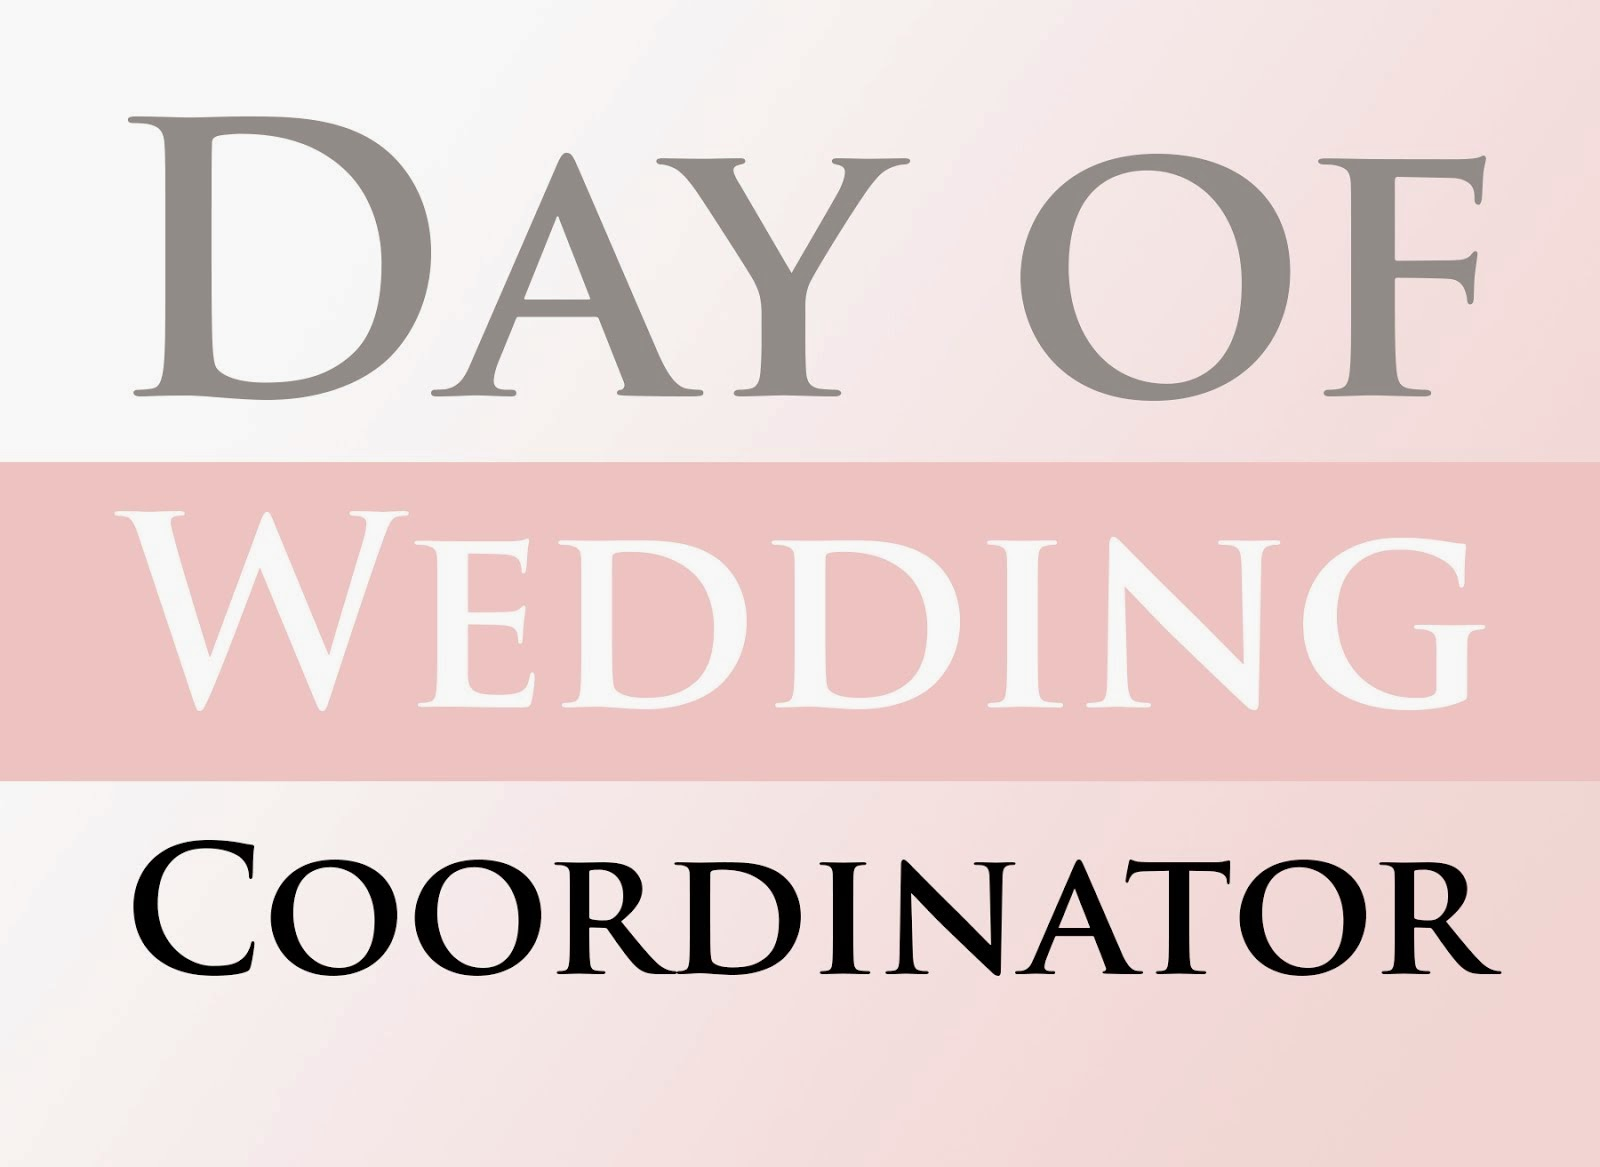 What day of coordination is bride day month coordinator what day of coordination is bride day month coordinator richmond xoxo weddings and events llc junglespirit Image collections